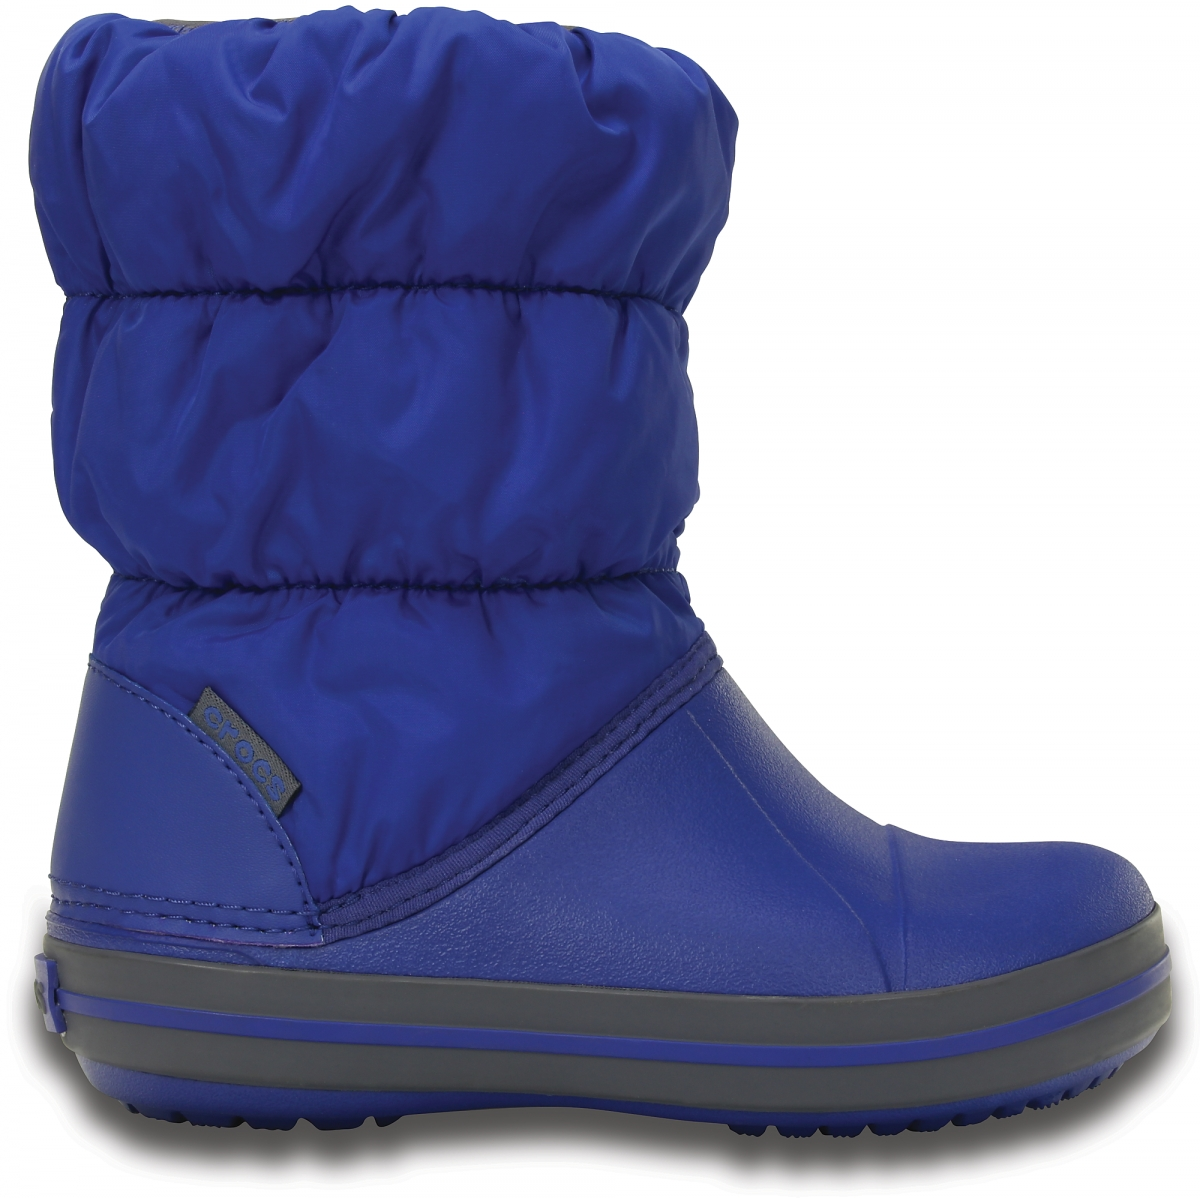 Crocs Winter Puff Boot Kids - Cerulean Blue/Light Grey, C8 (24-25)